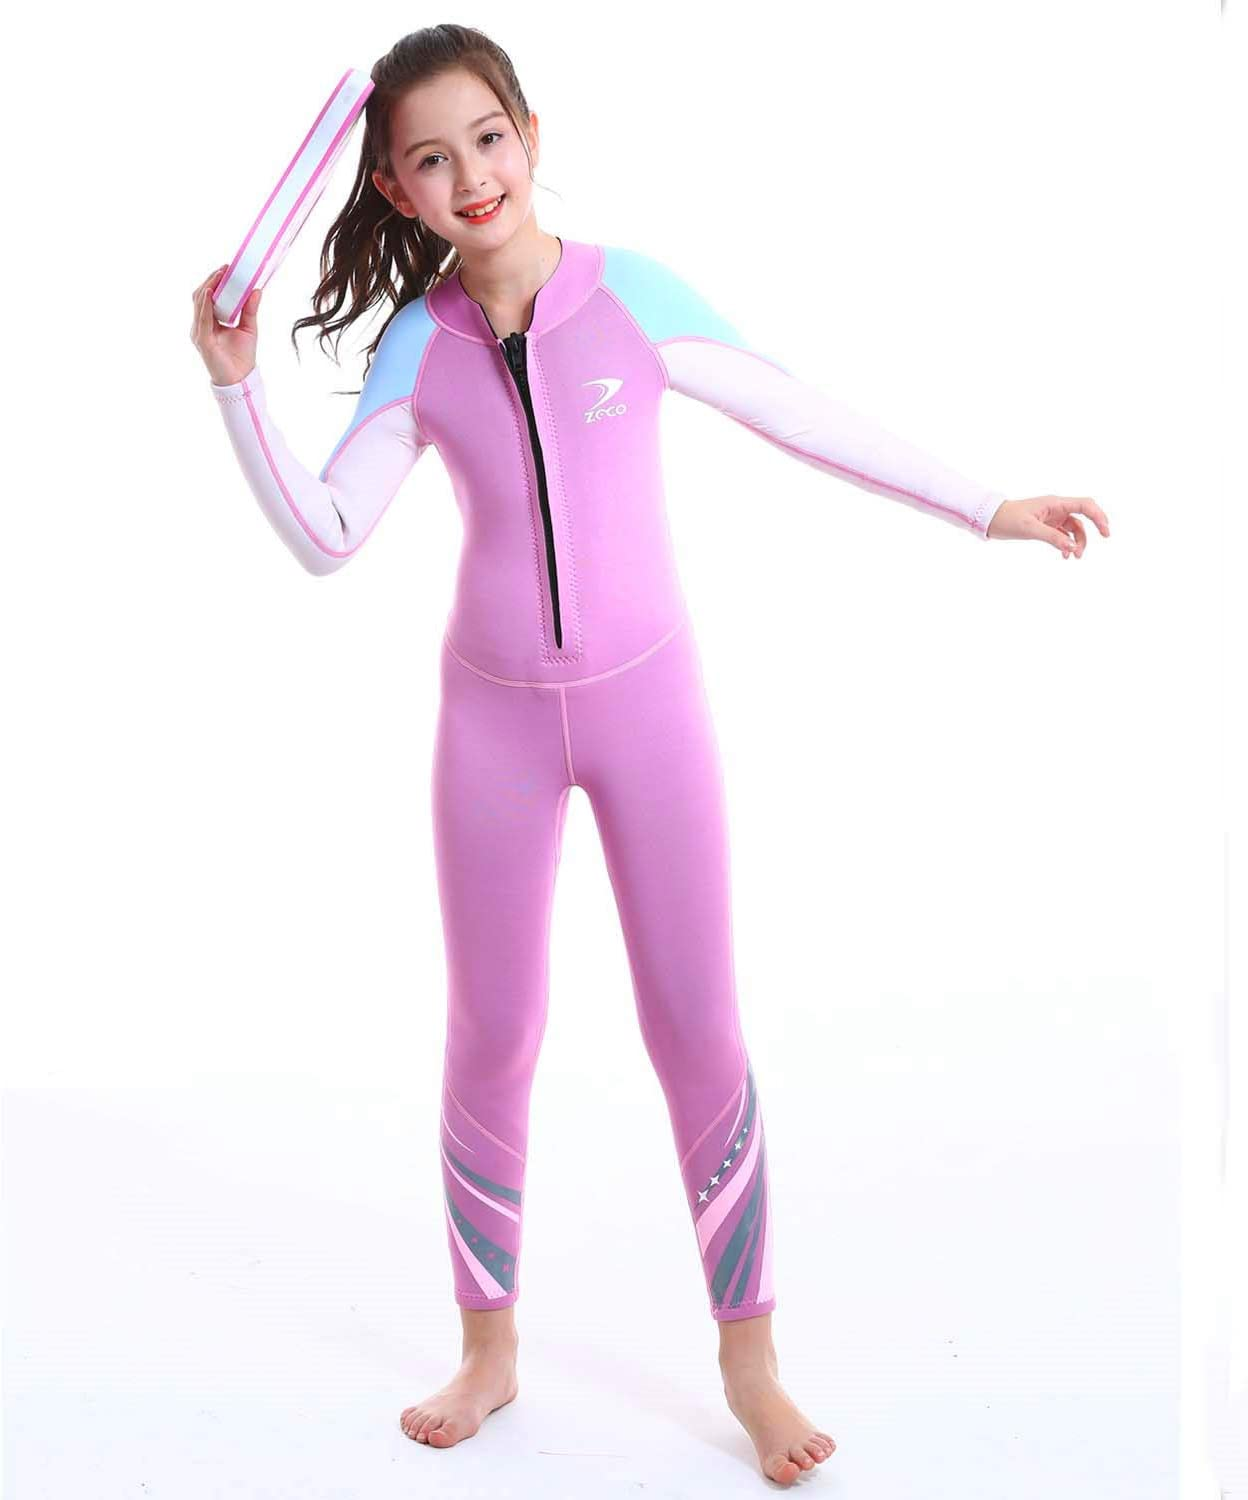 ZCCO Kids Wetsuit,3mm Neoprene Thermal Swimsuit, Youth Boy's and Girl's One Piece Wet Suits Warmth Long Sleeve Swimsuit for Diving,Swimming,Surfing etc Water Sports